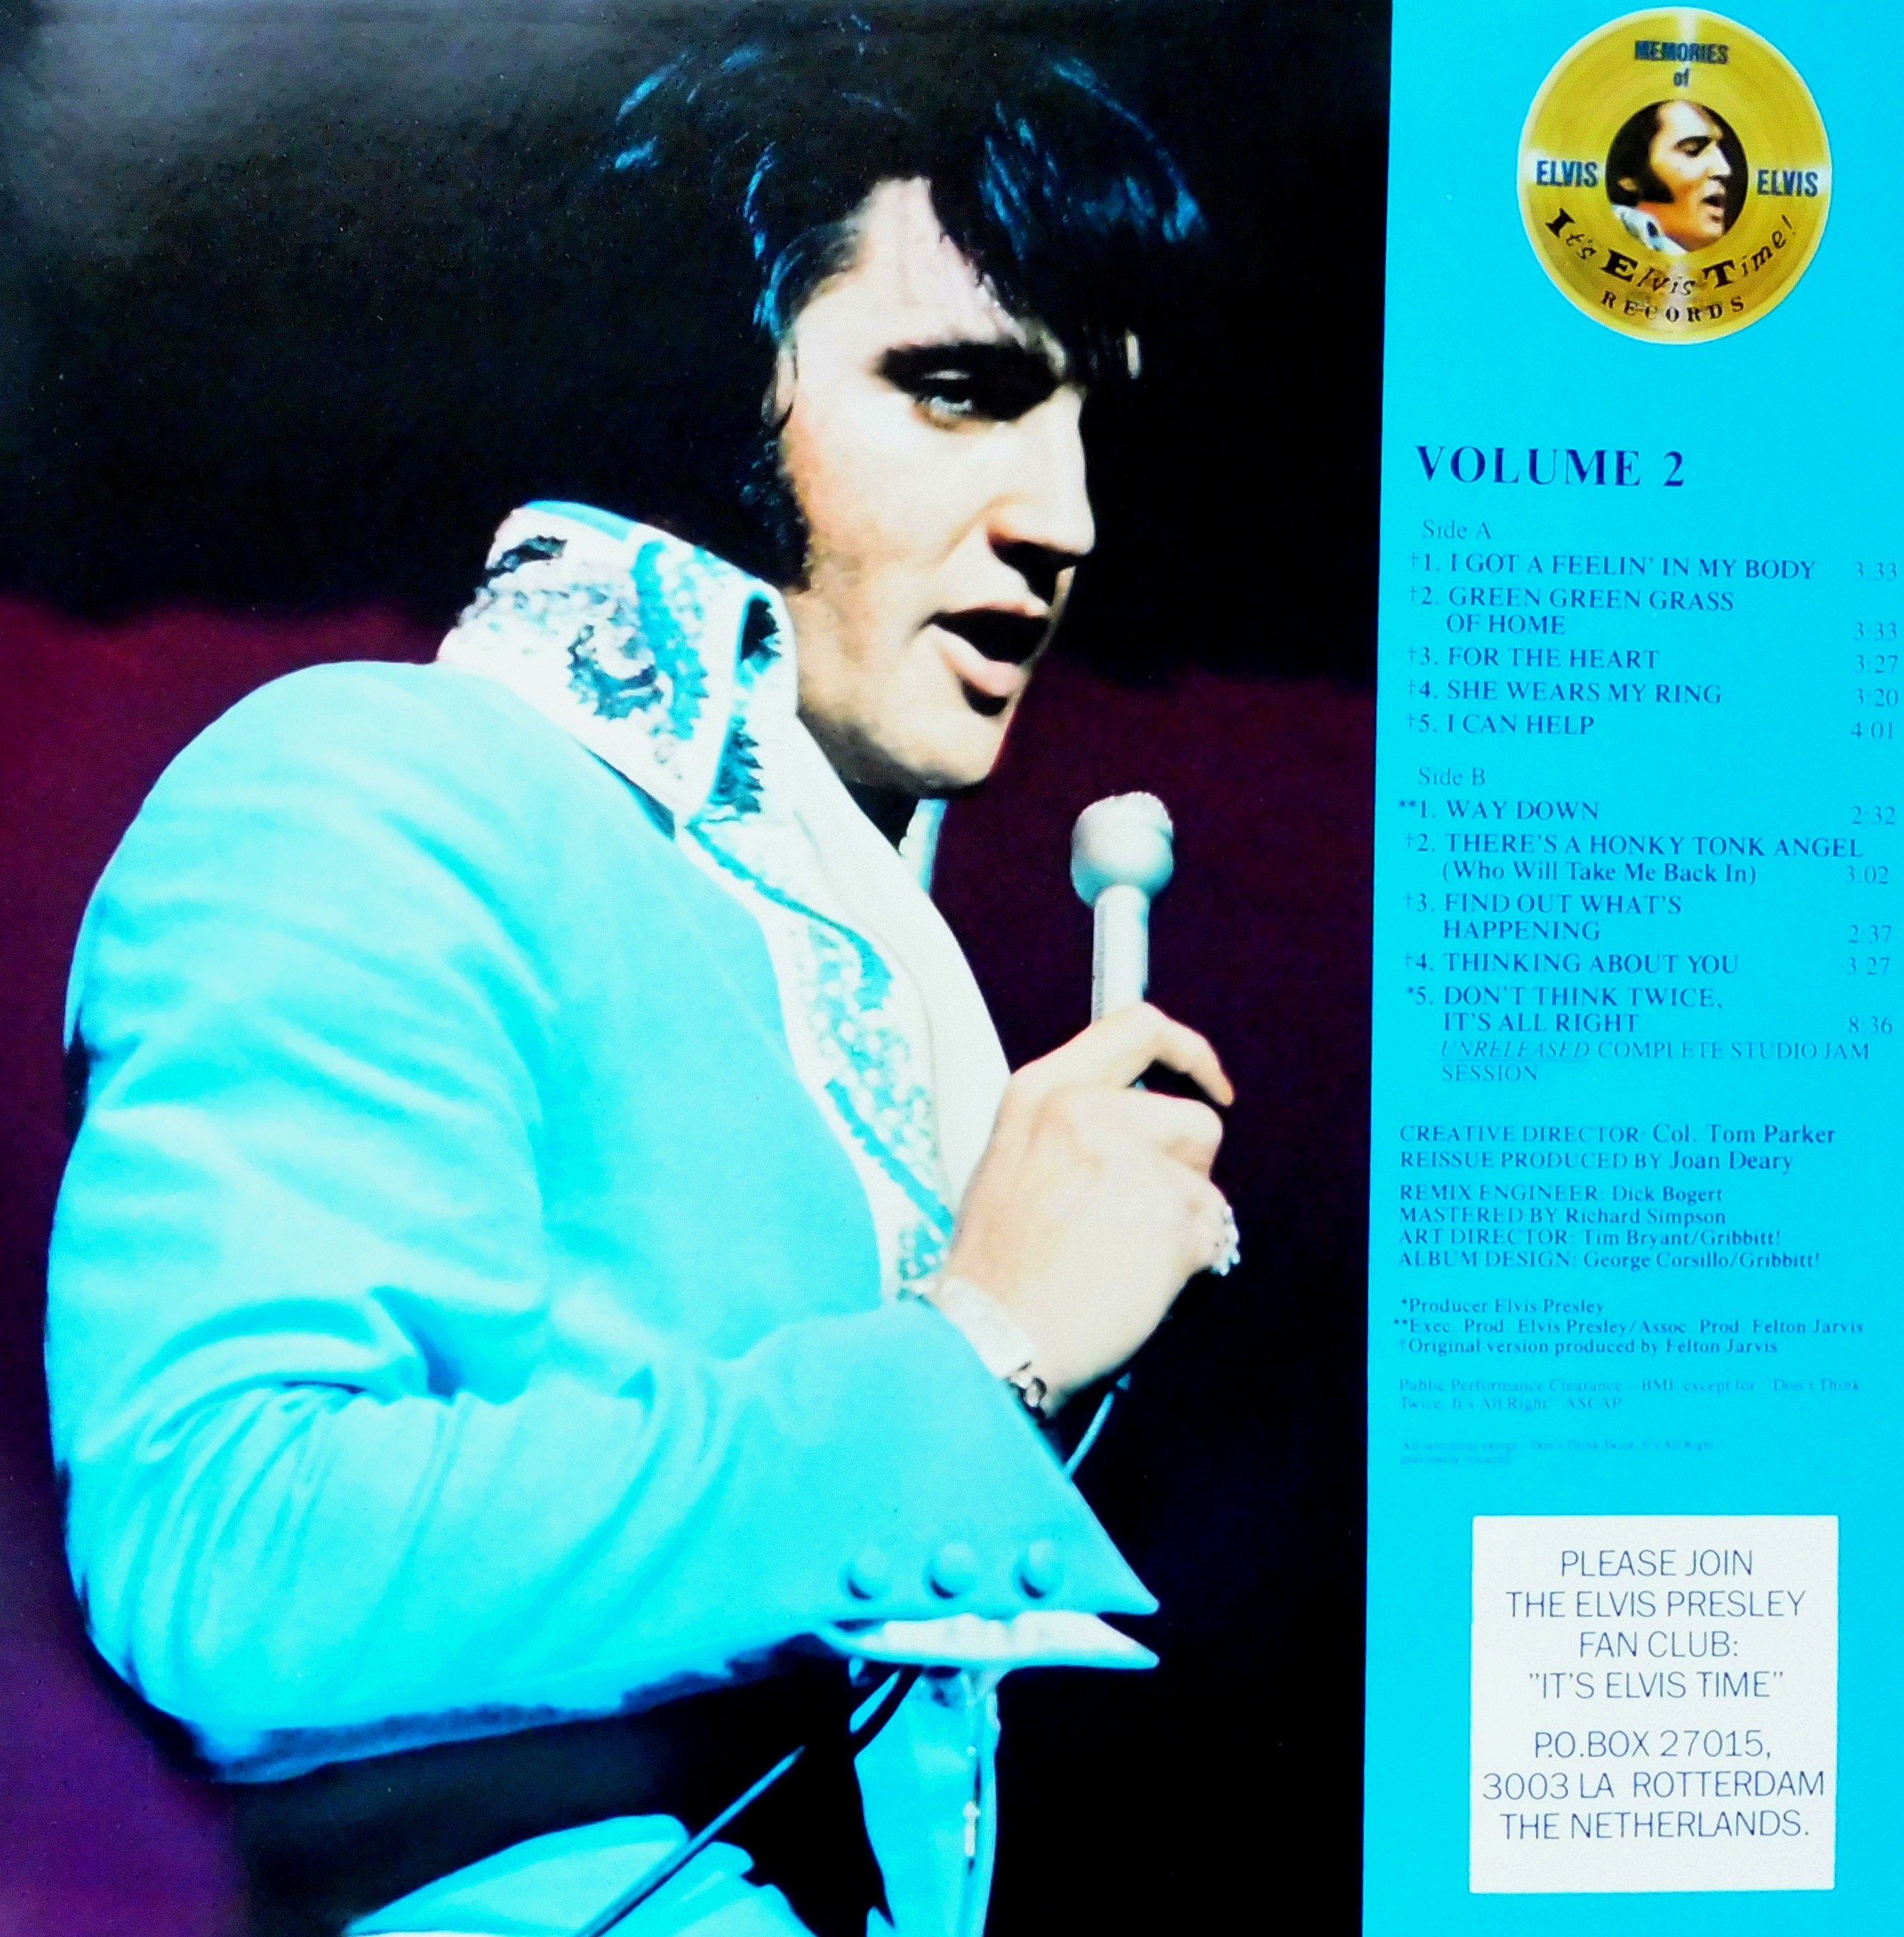 OUR MEMORIES OF ELVIS - Volume 1 & 2 Omoevol1und2nlinnenre1vjin